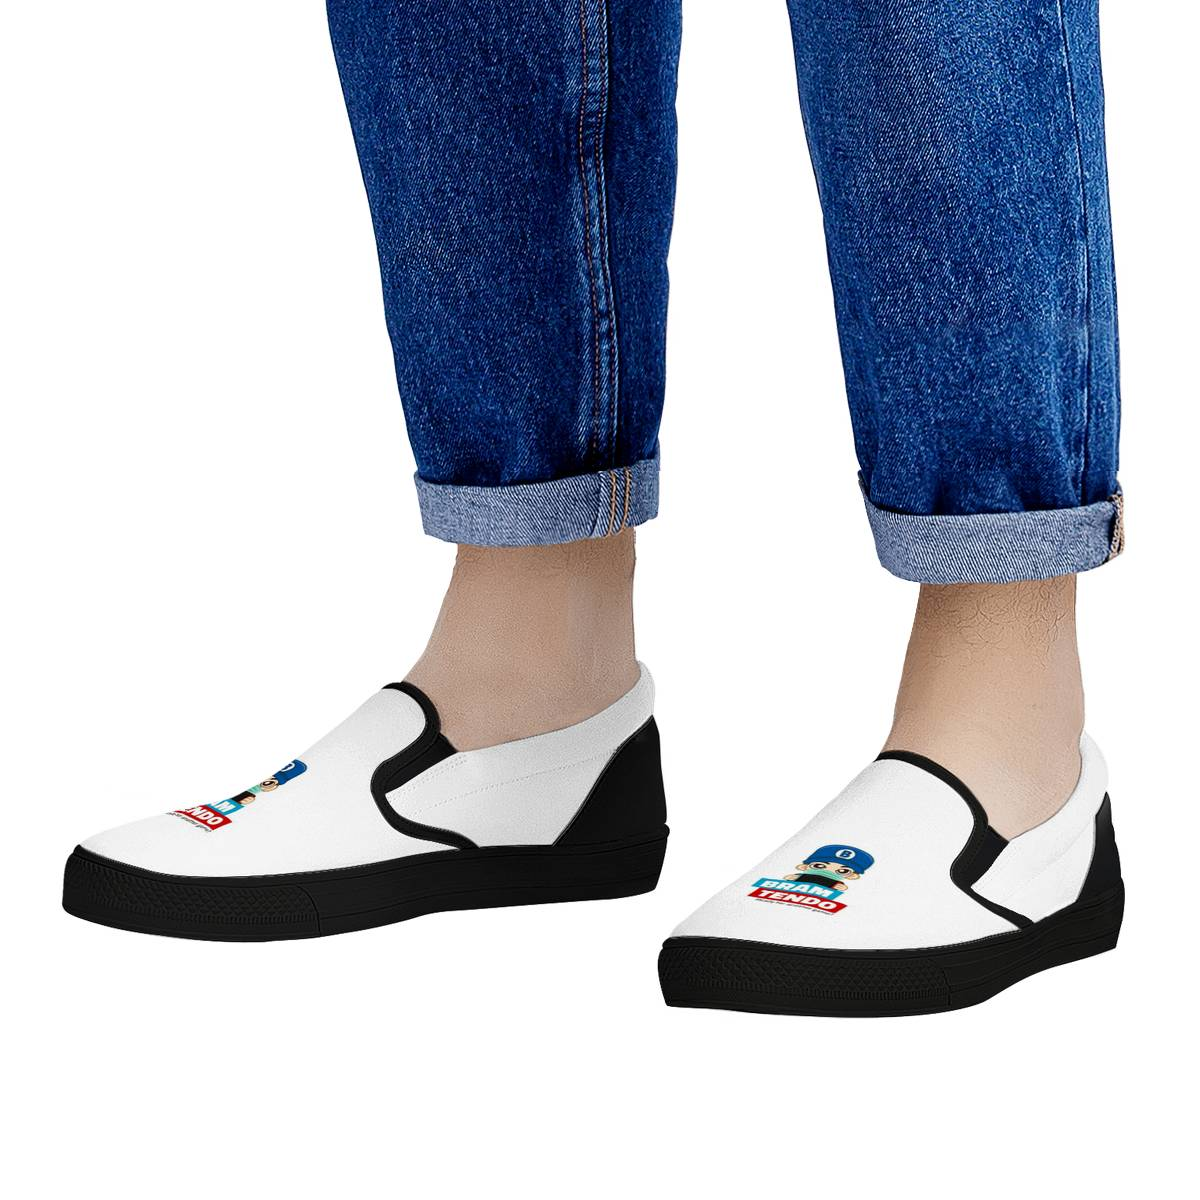 Bramtendo In Mask Official Slip On Shoes